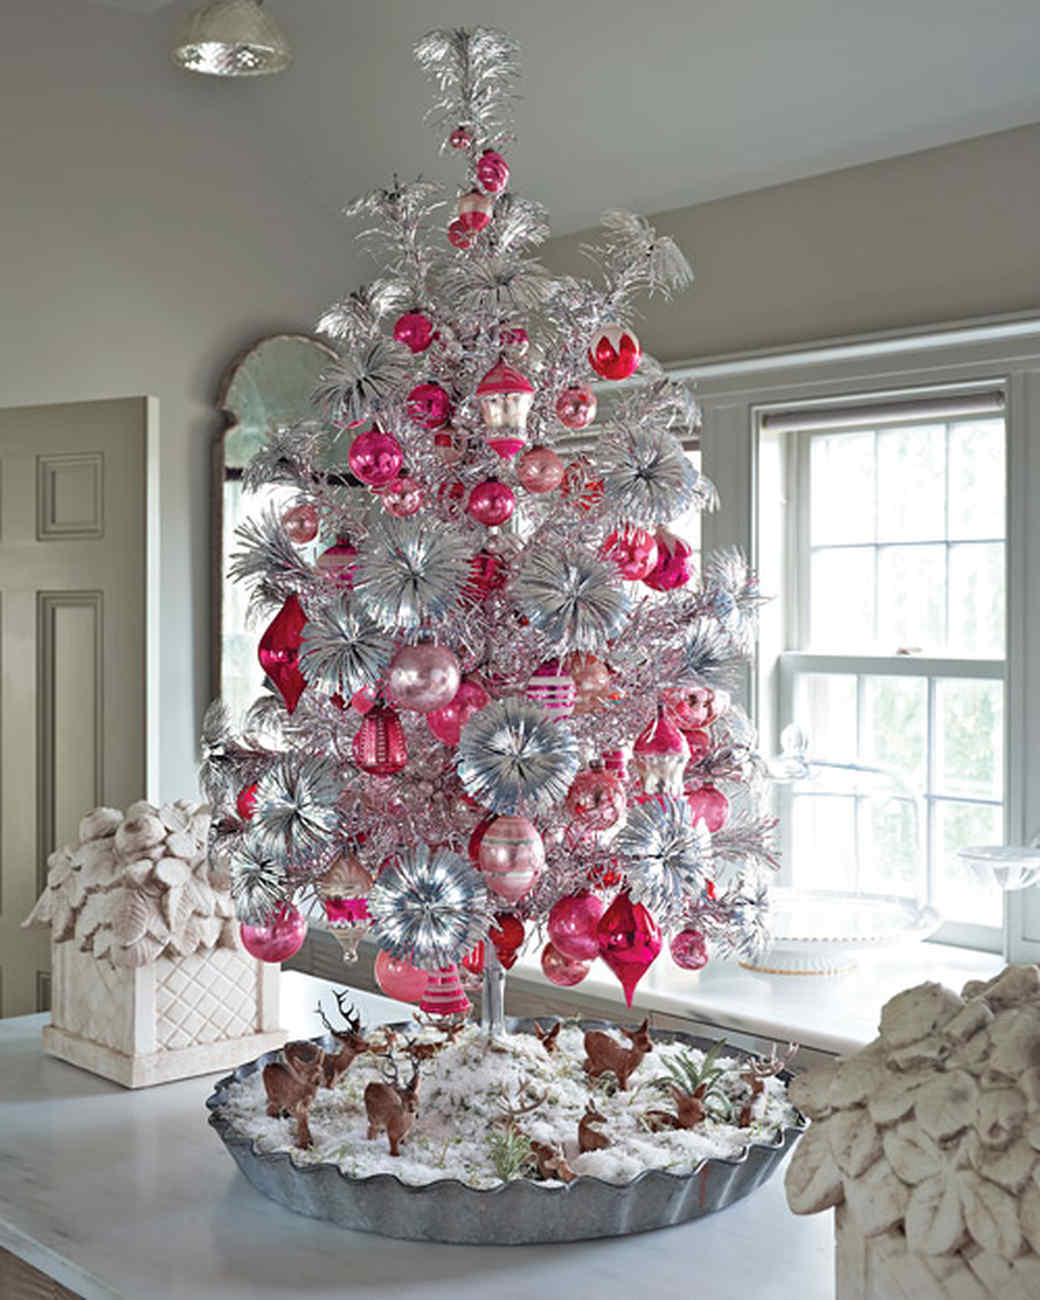 28 creative christmas tree decorating ideas martha stewart - Silver And White Christmas Tree Decorations